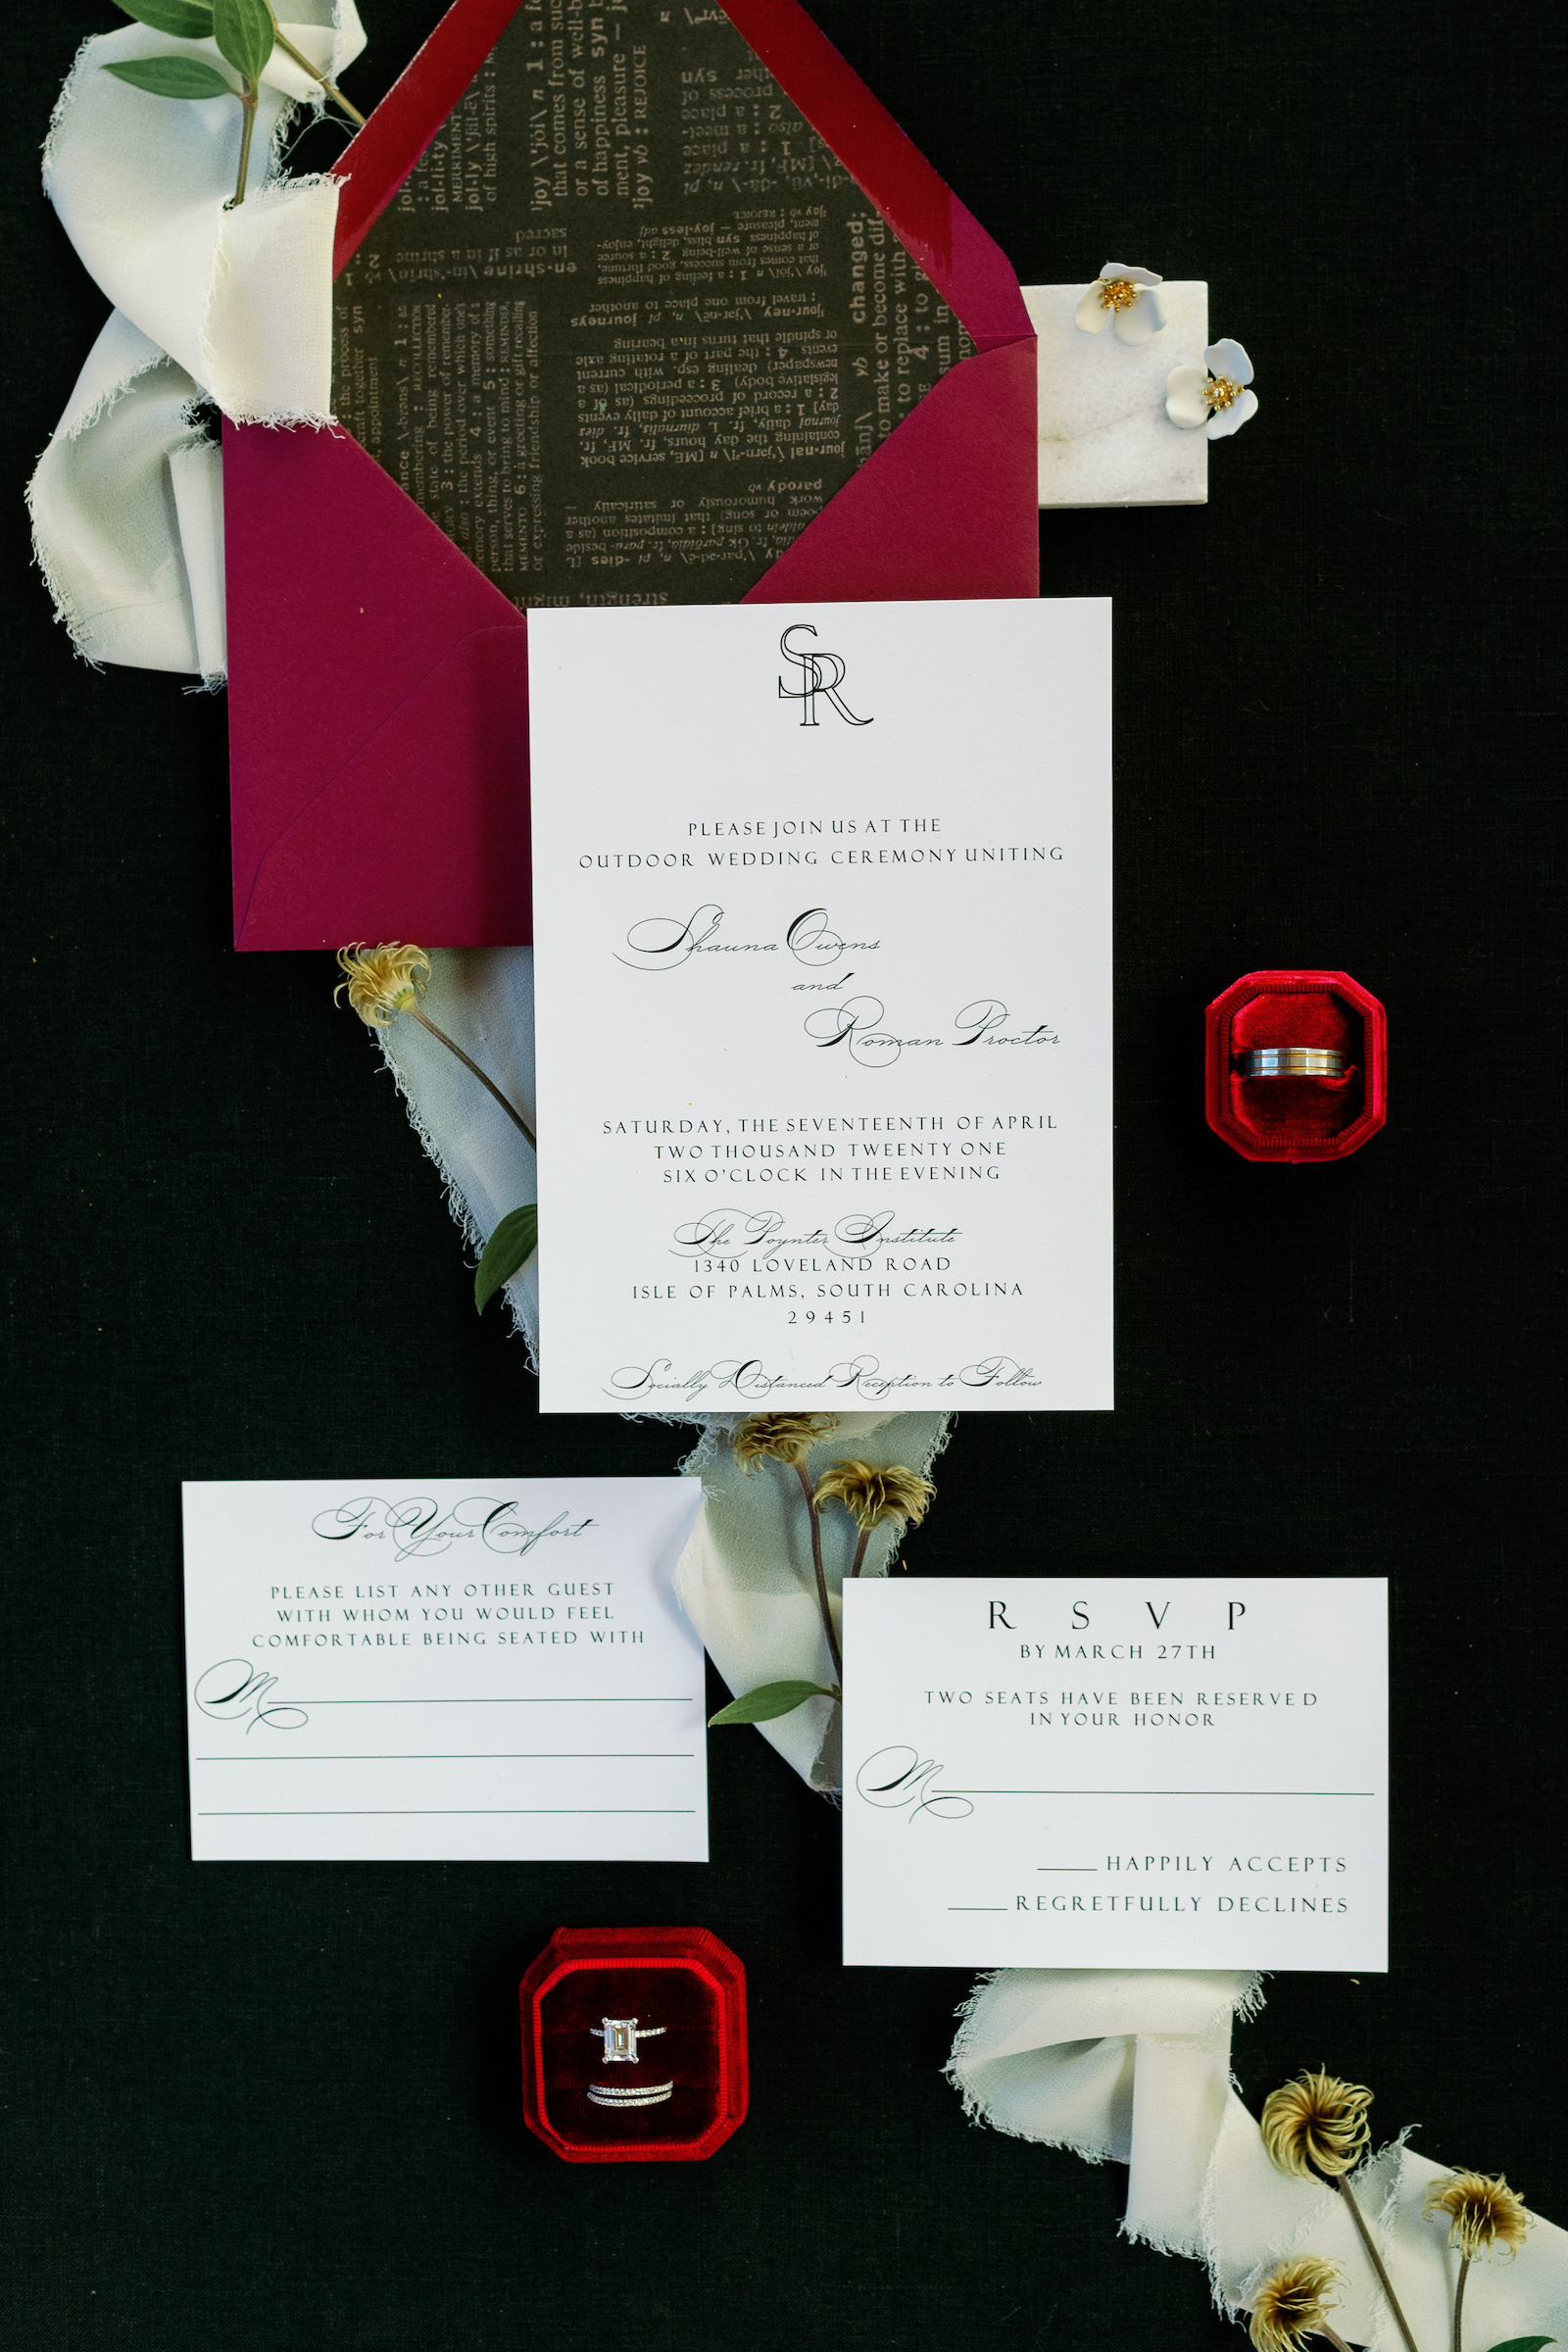 St. Pete COVID Wedding Stationery Flat Lay Invitation Suite with Social Distancing Response Card   Black and White Wedding Invitation with Red Envelope and Red Velvet Ring Box   Dewitt for Love Photography